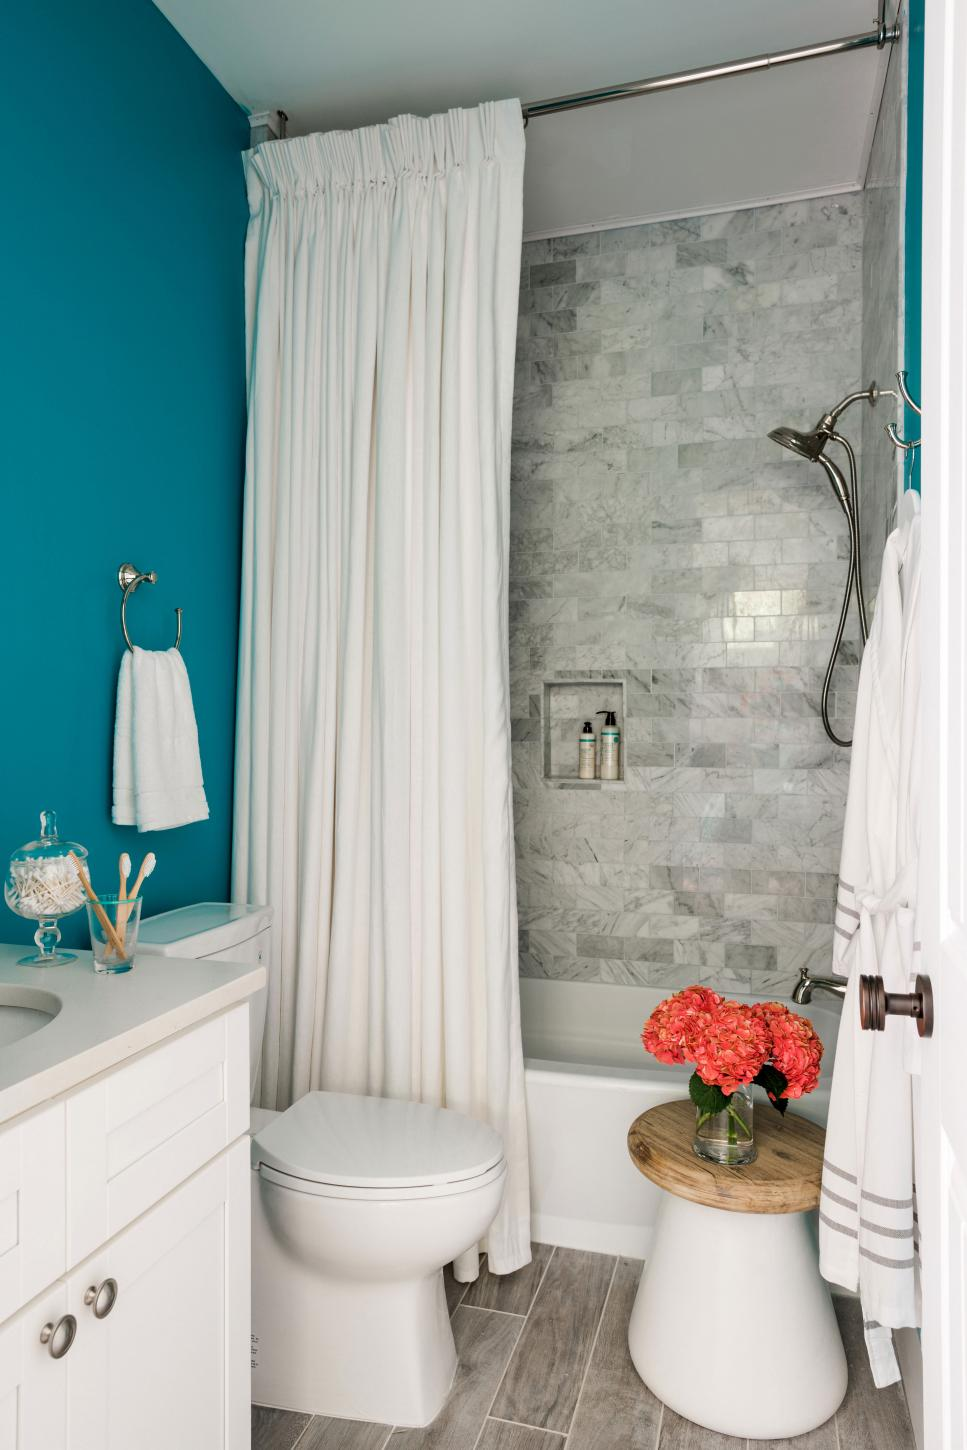 Pictures Gallery Of Hgtv Bathroom Remodels. New